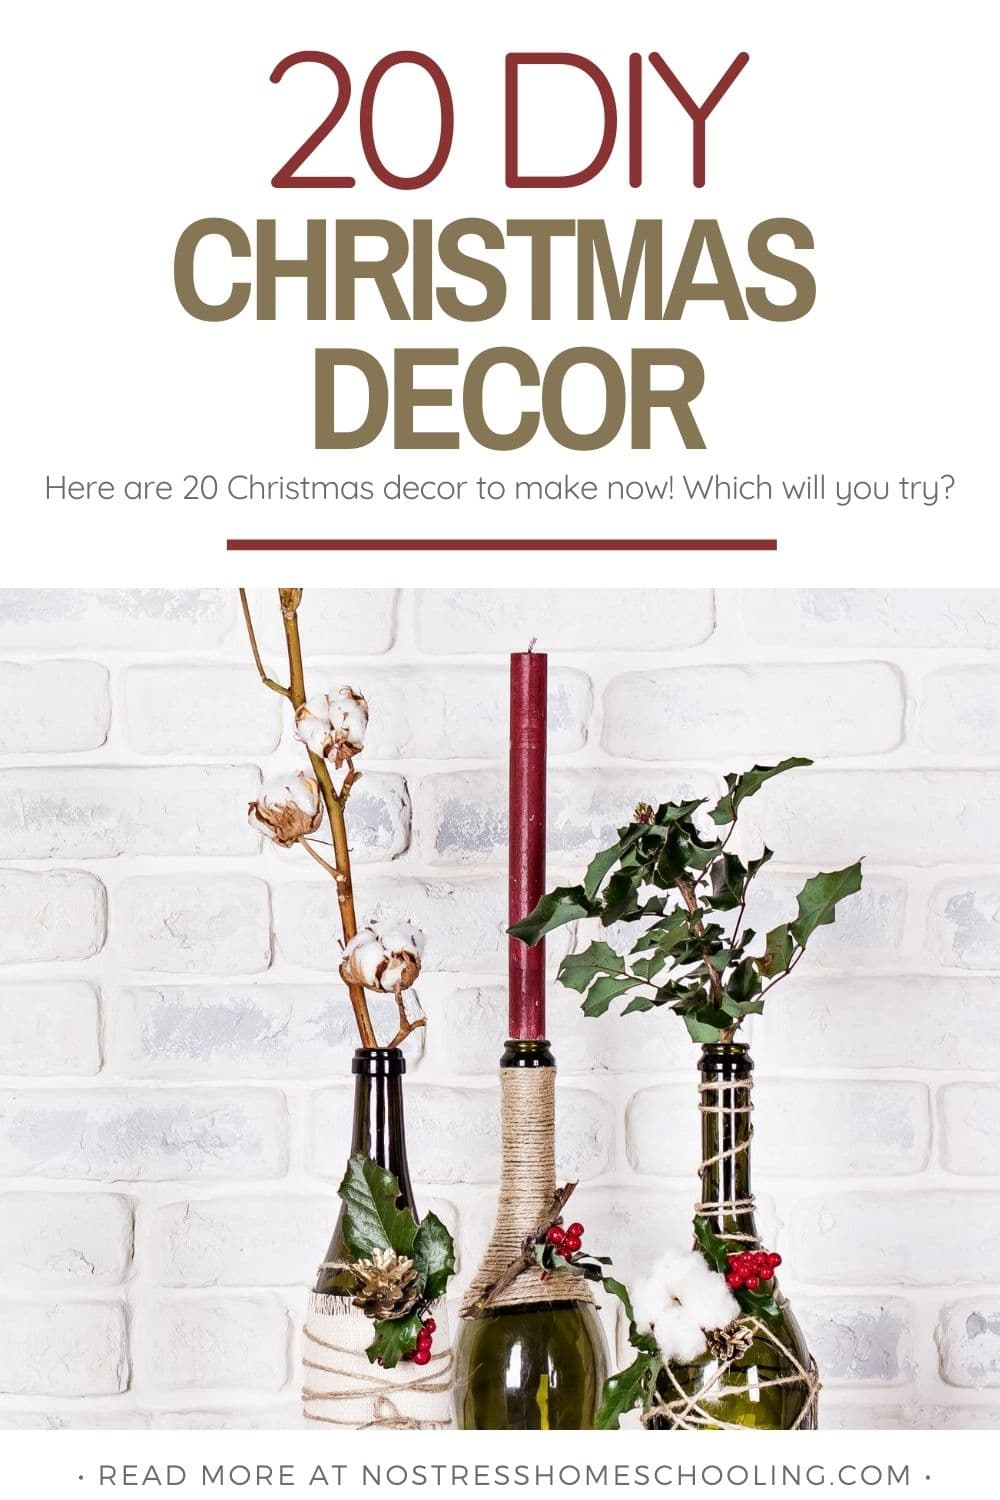 image showing 20 DIY CHRISTMAS DECOR